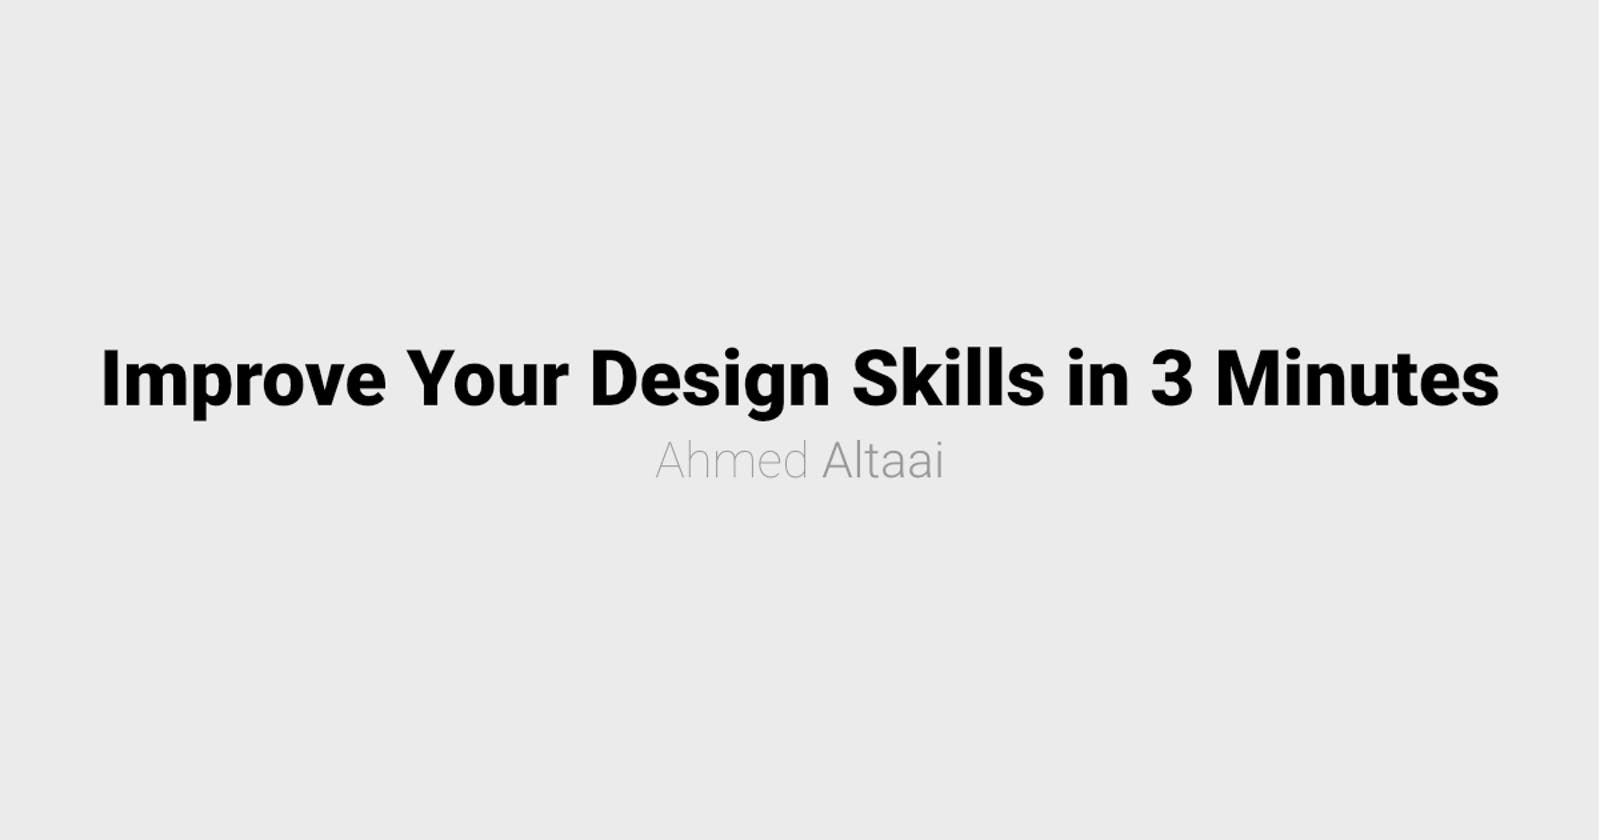 A Three-Minutes Read on How to Improve Your Design Skills